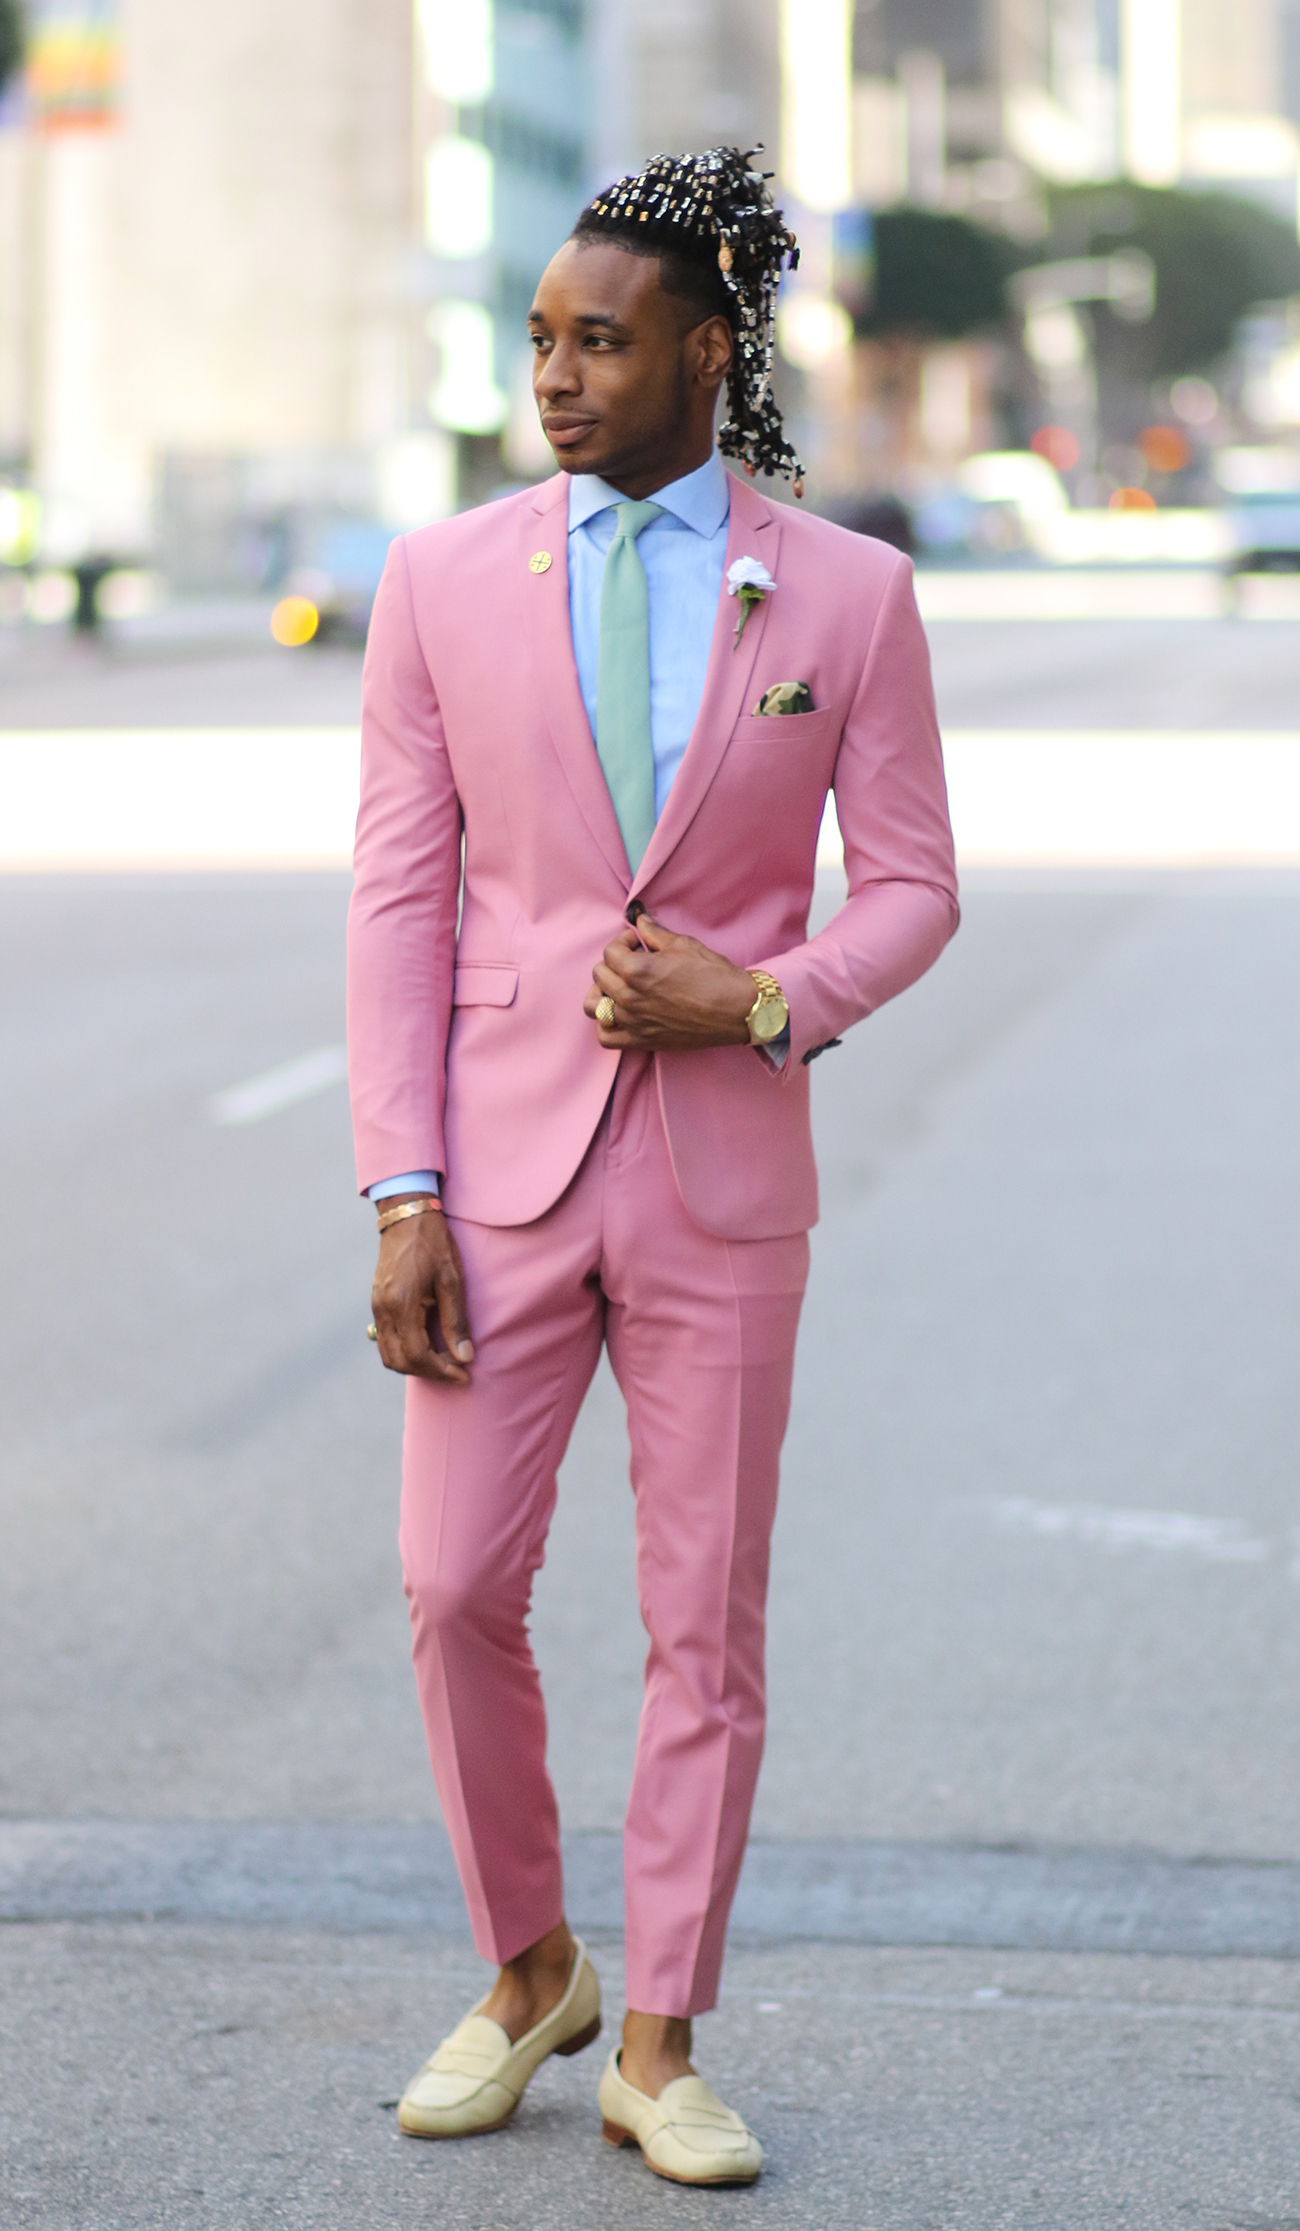 Ootd Pink Suit For The Summer Norris Danta Ford